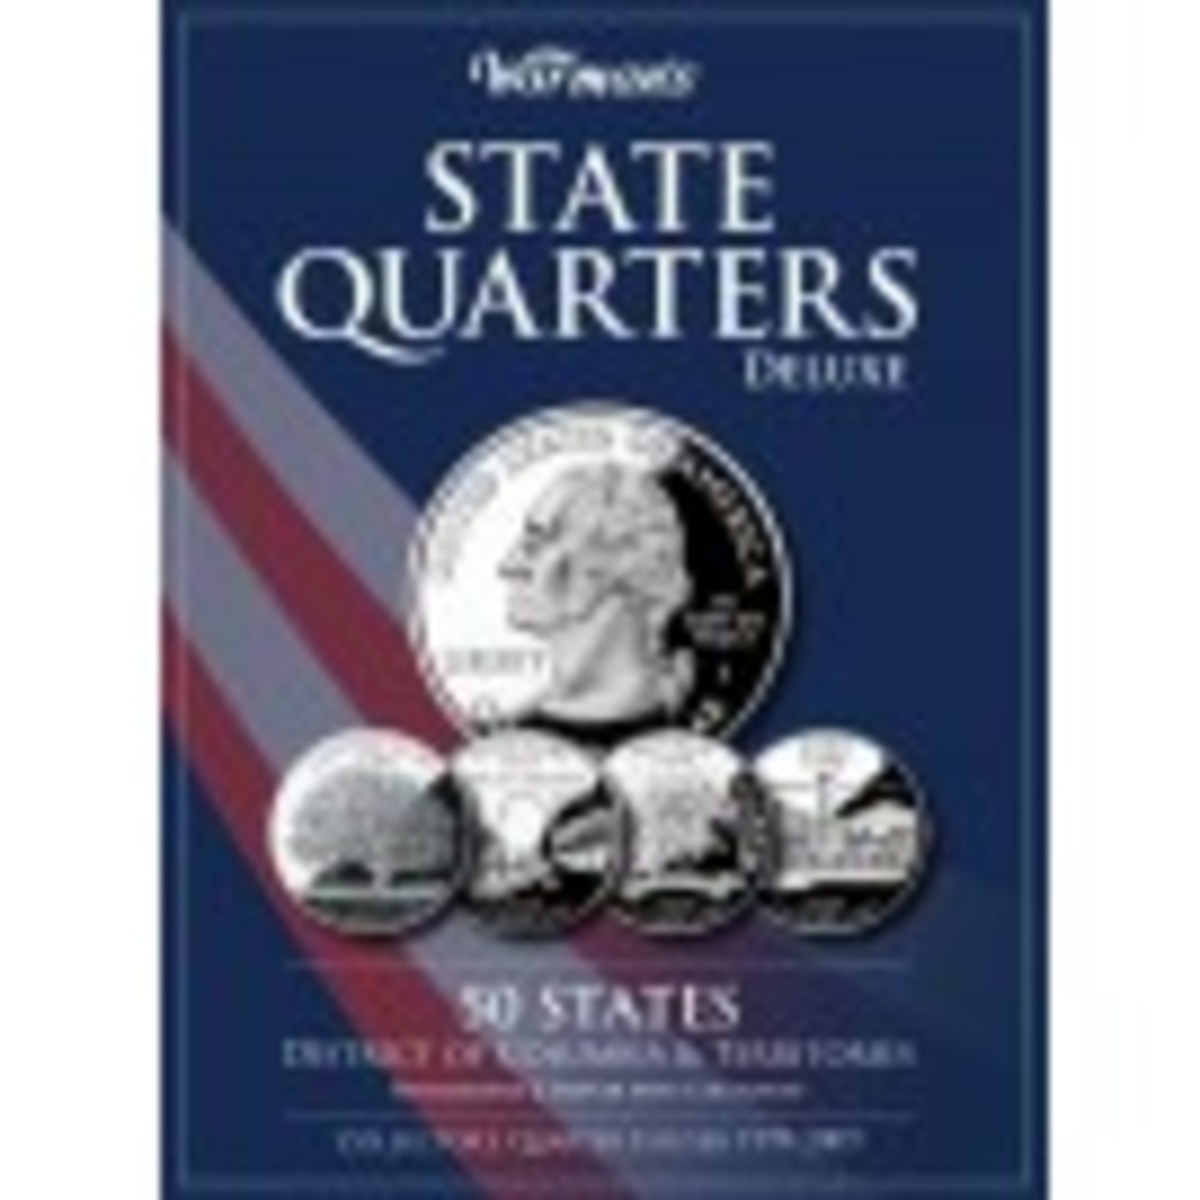 State Quarters Deluxe Collector's Folder